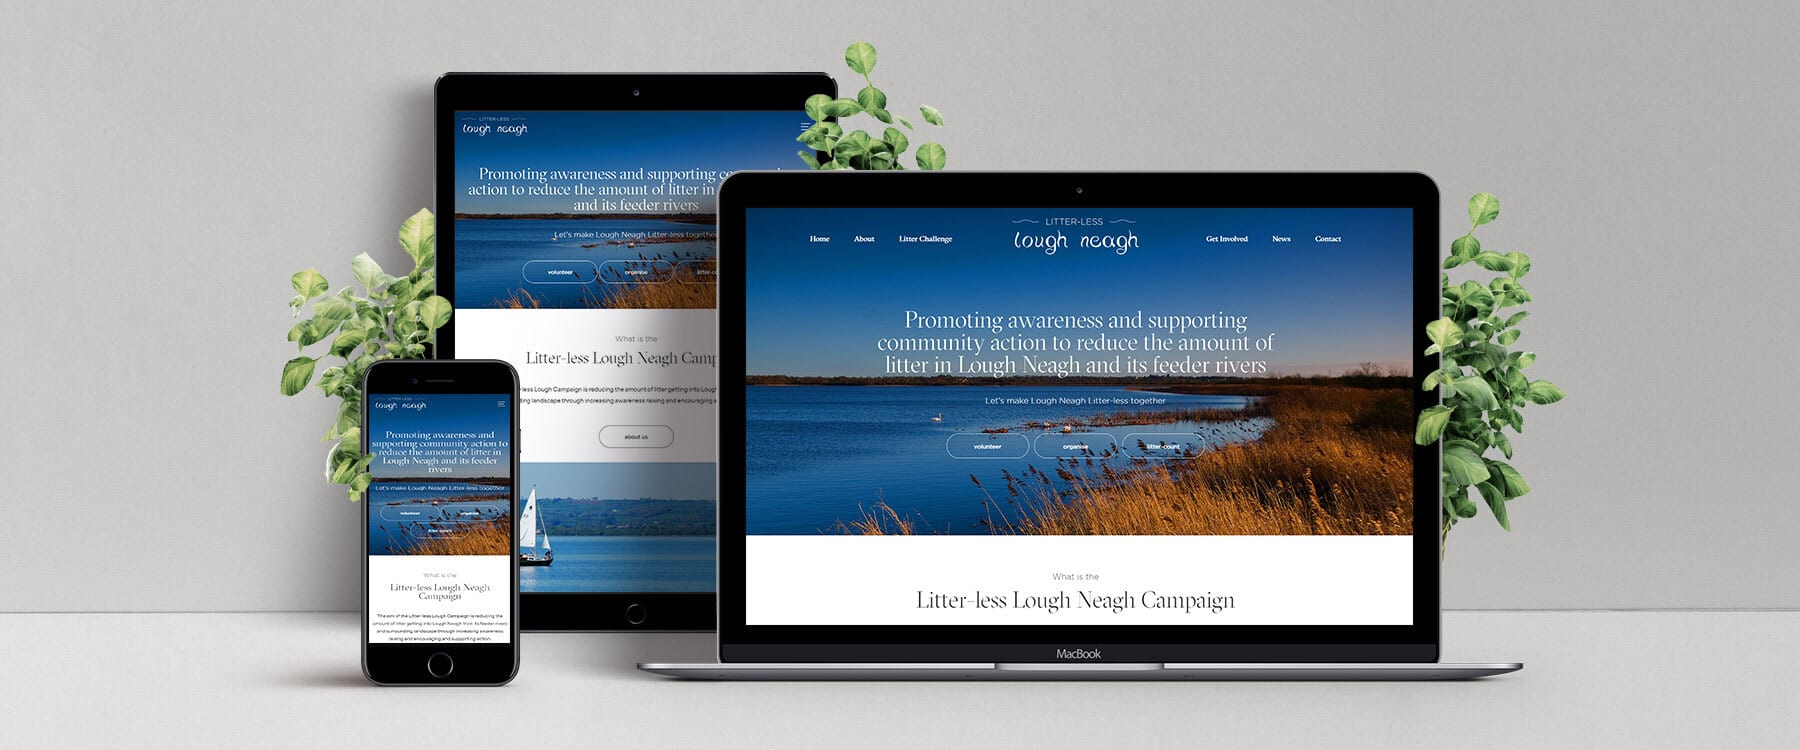 Modern New Website for Litterless Lough Neagh Project Image